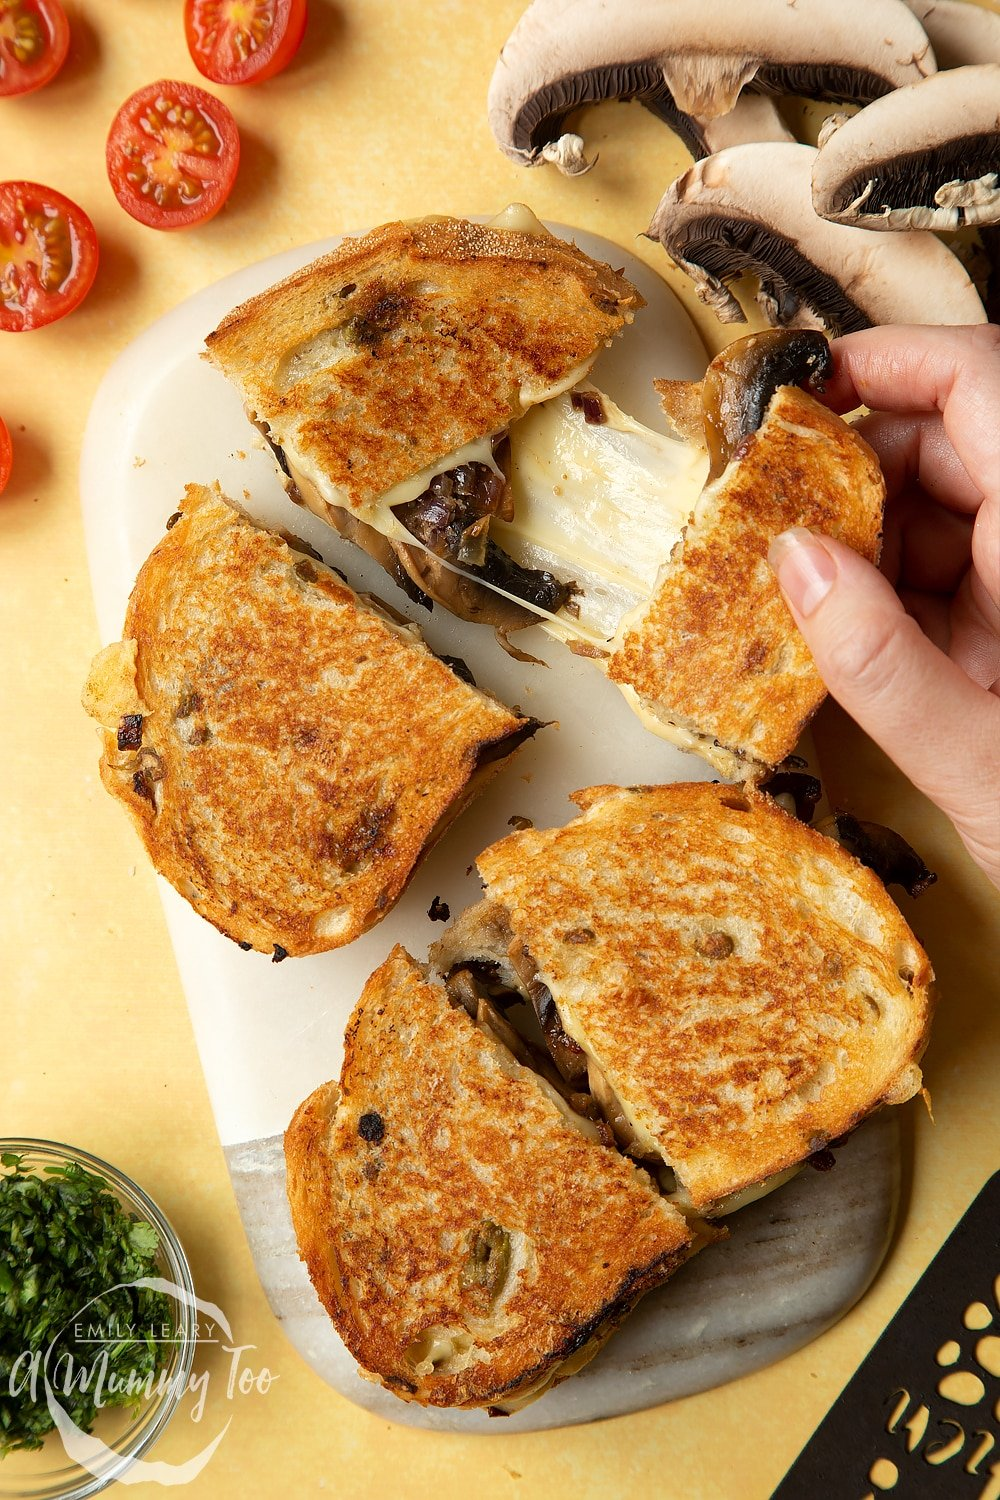 Two Jarlsberg cheese and mushroom toasties are on a serving board, one is being pulled apart so the cheese stretches out between them.